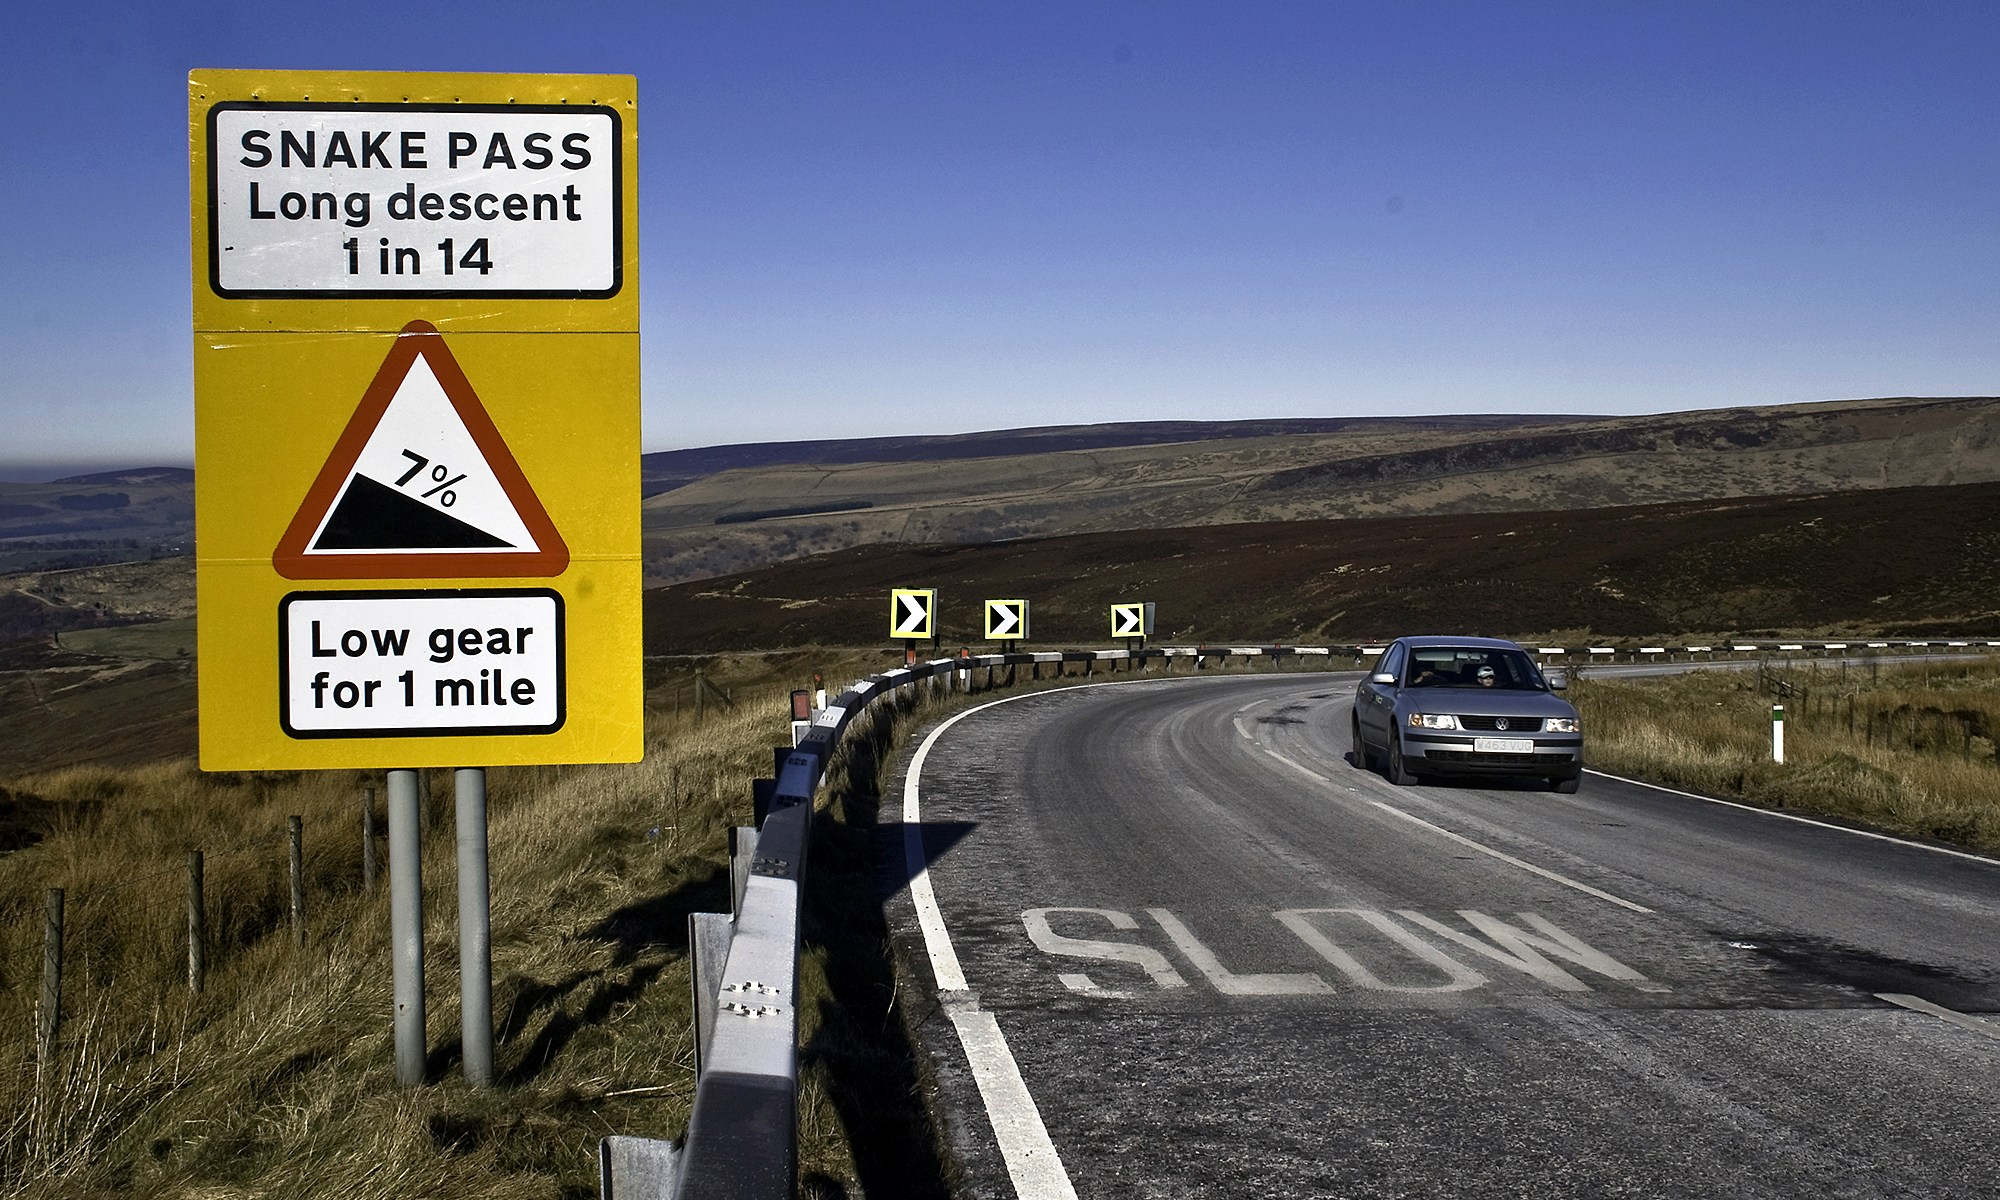 Snake Pass, Peak District National Park